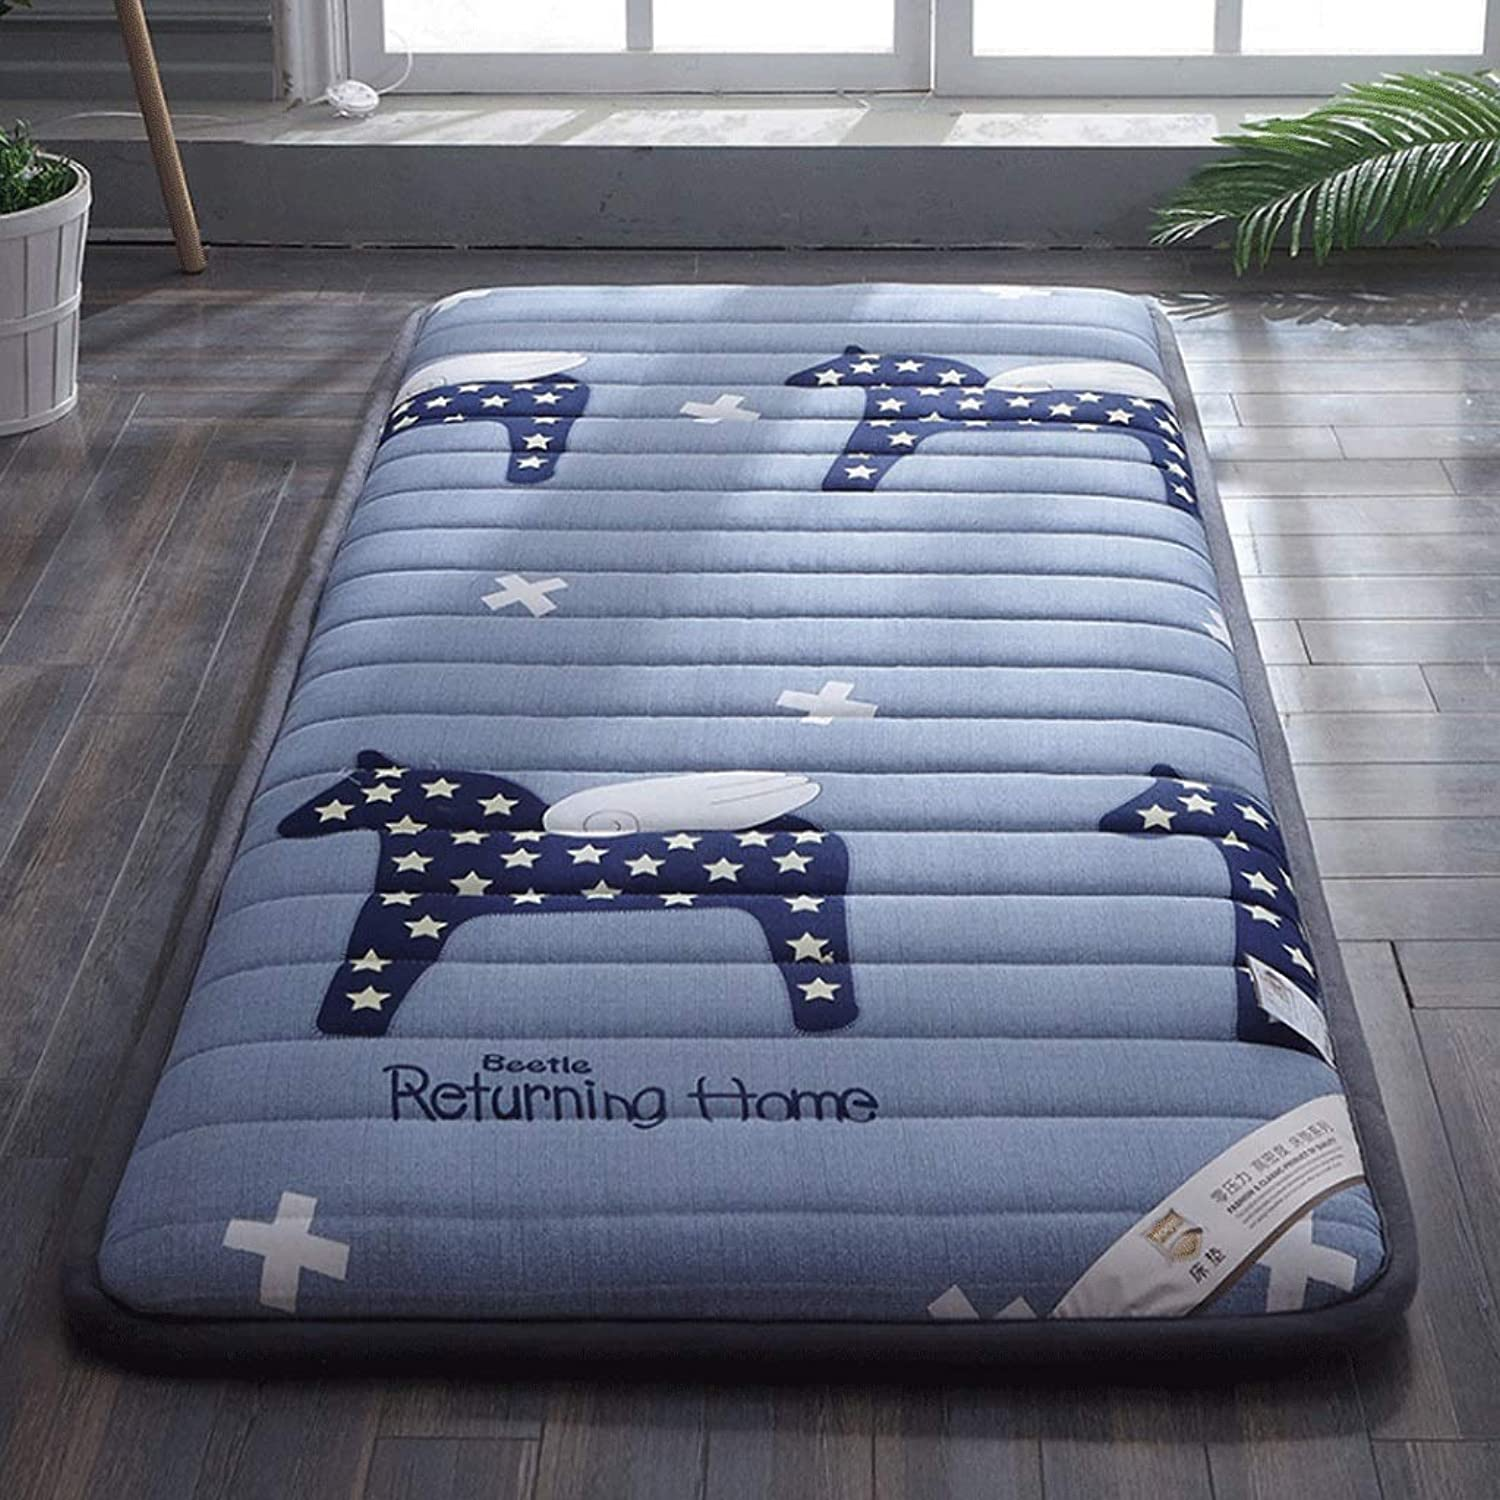 Cotton Old Coarse Cloth Mattress Thick Padded Student Dormitory Bedroom Sleeping Pad (color   1, Size   120X200cm)